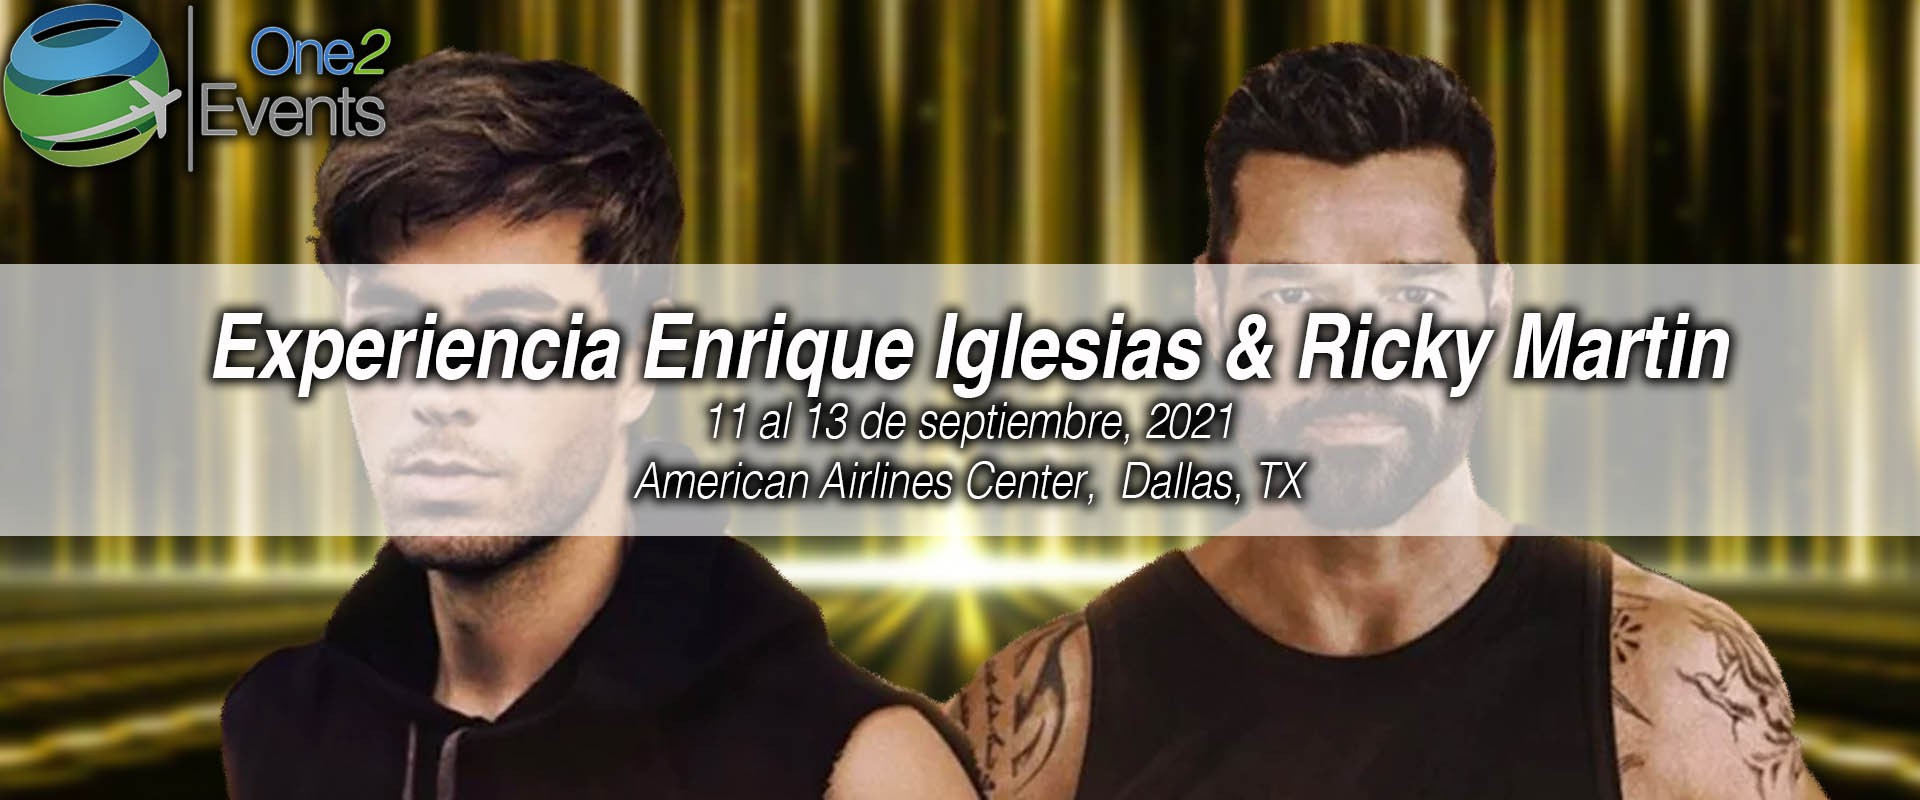 Concierto Enrique Iglesias & Ricky Martin American Airlines Center, Dallas